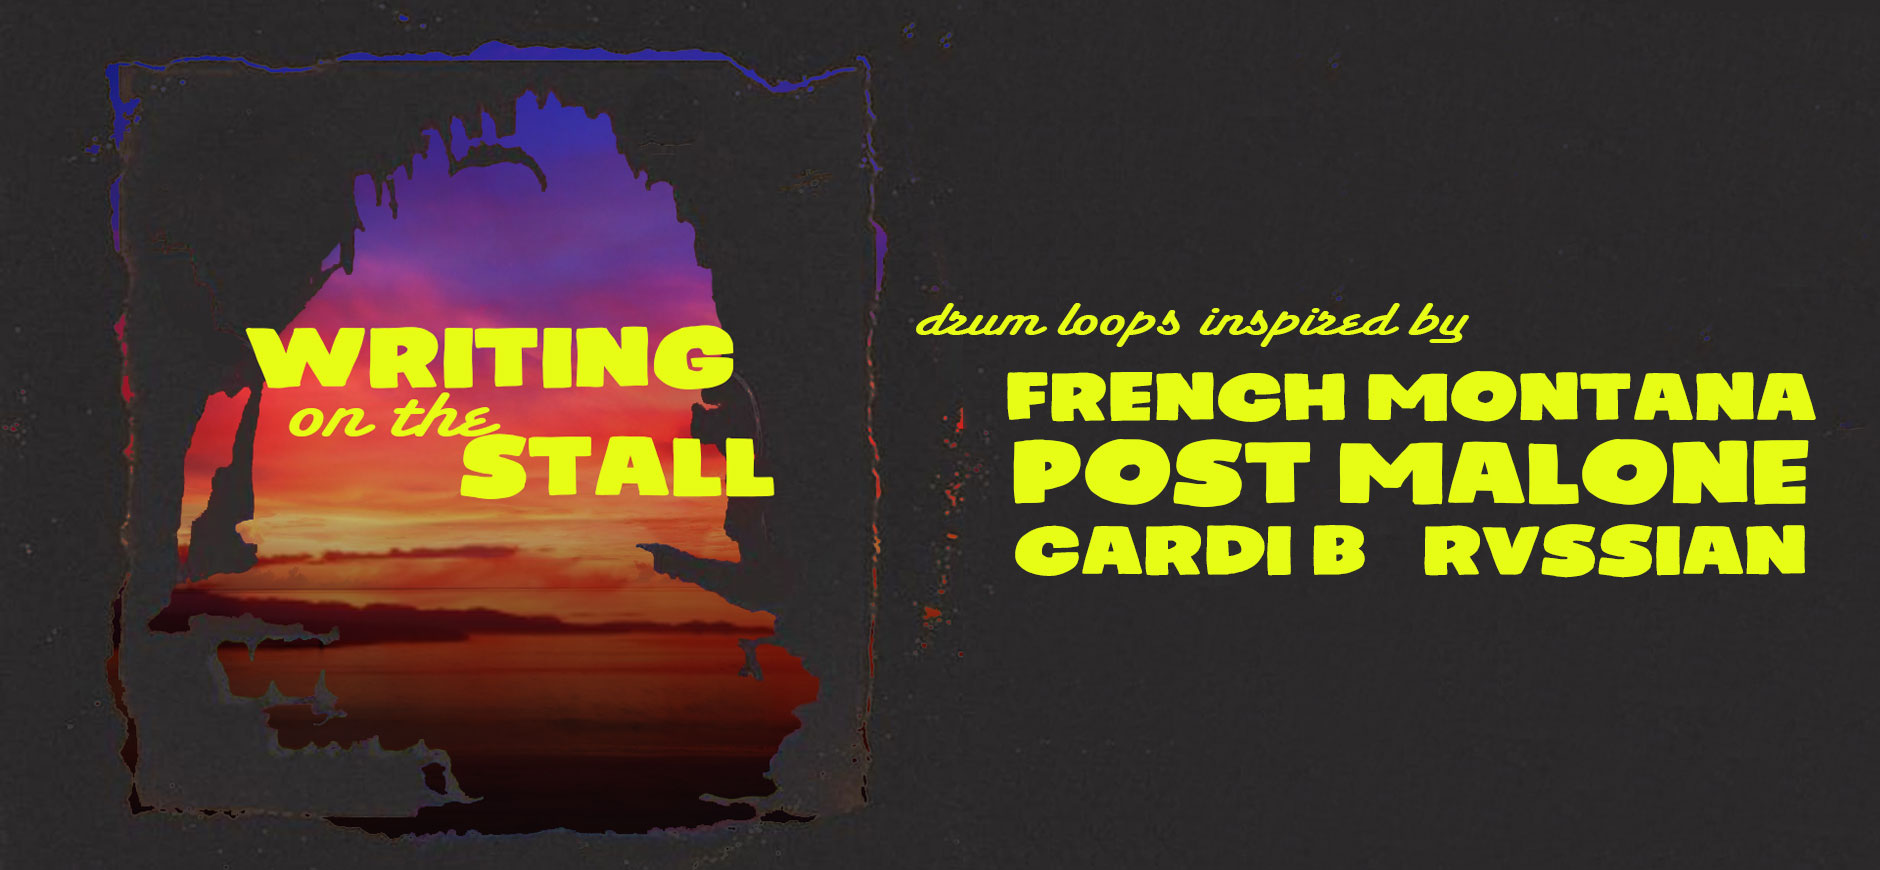 Writing on the Wall Drum Loops Kit Inspired by French Montana